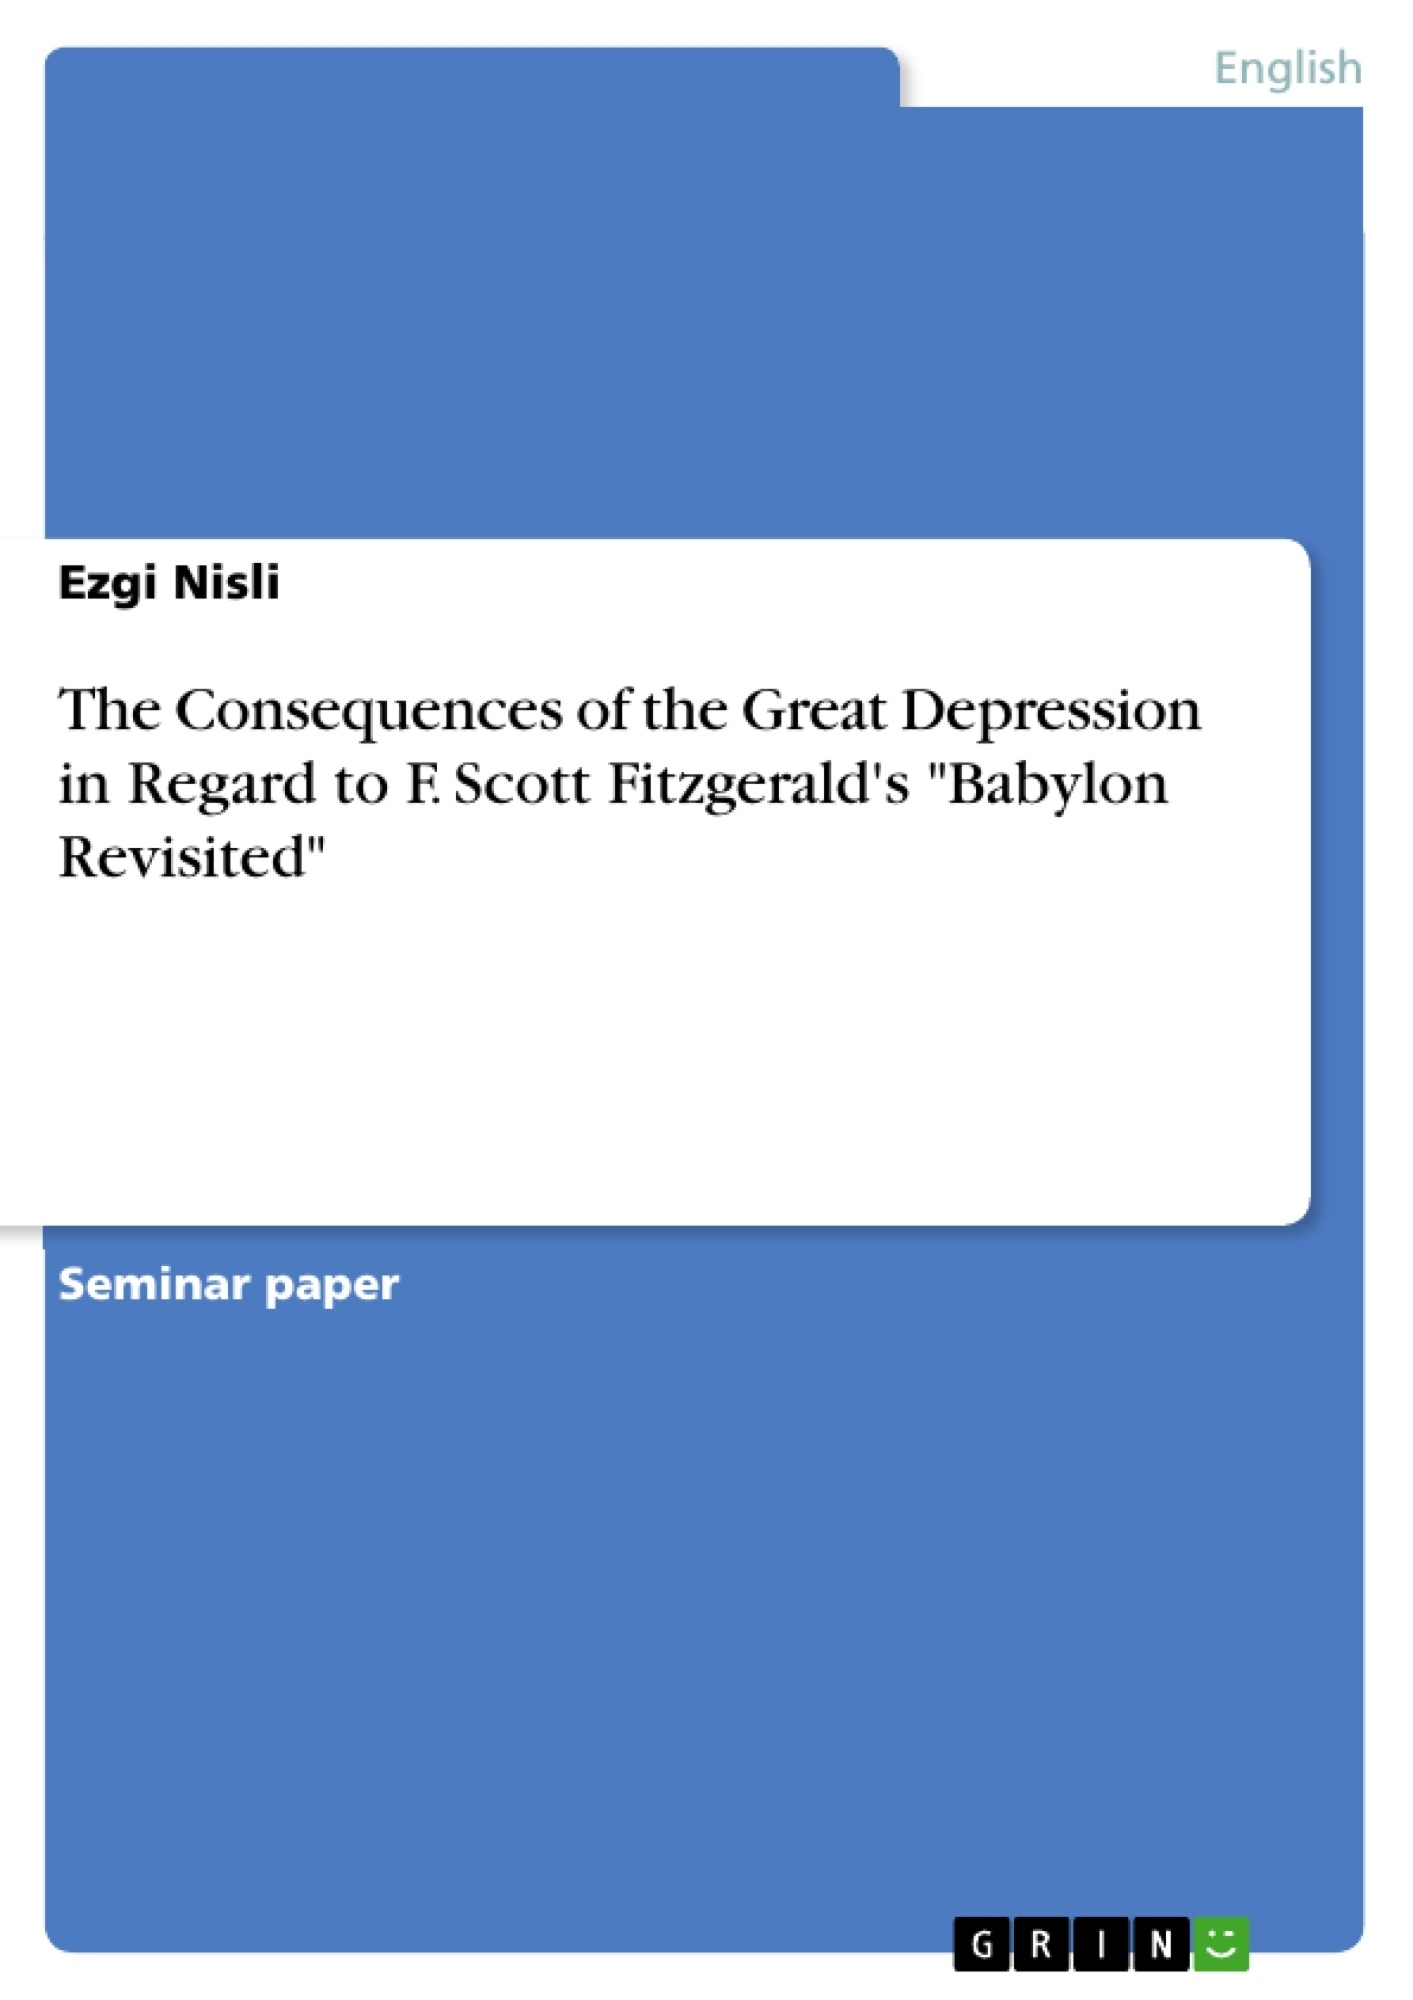 """Title: The Consequences of the Great Depression in Regard to F. Scott Fitzgerald's """"Babylon Revisited"""""""